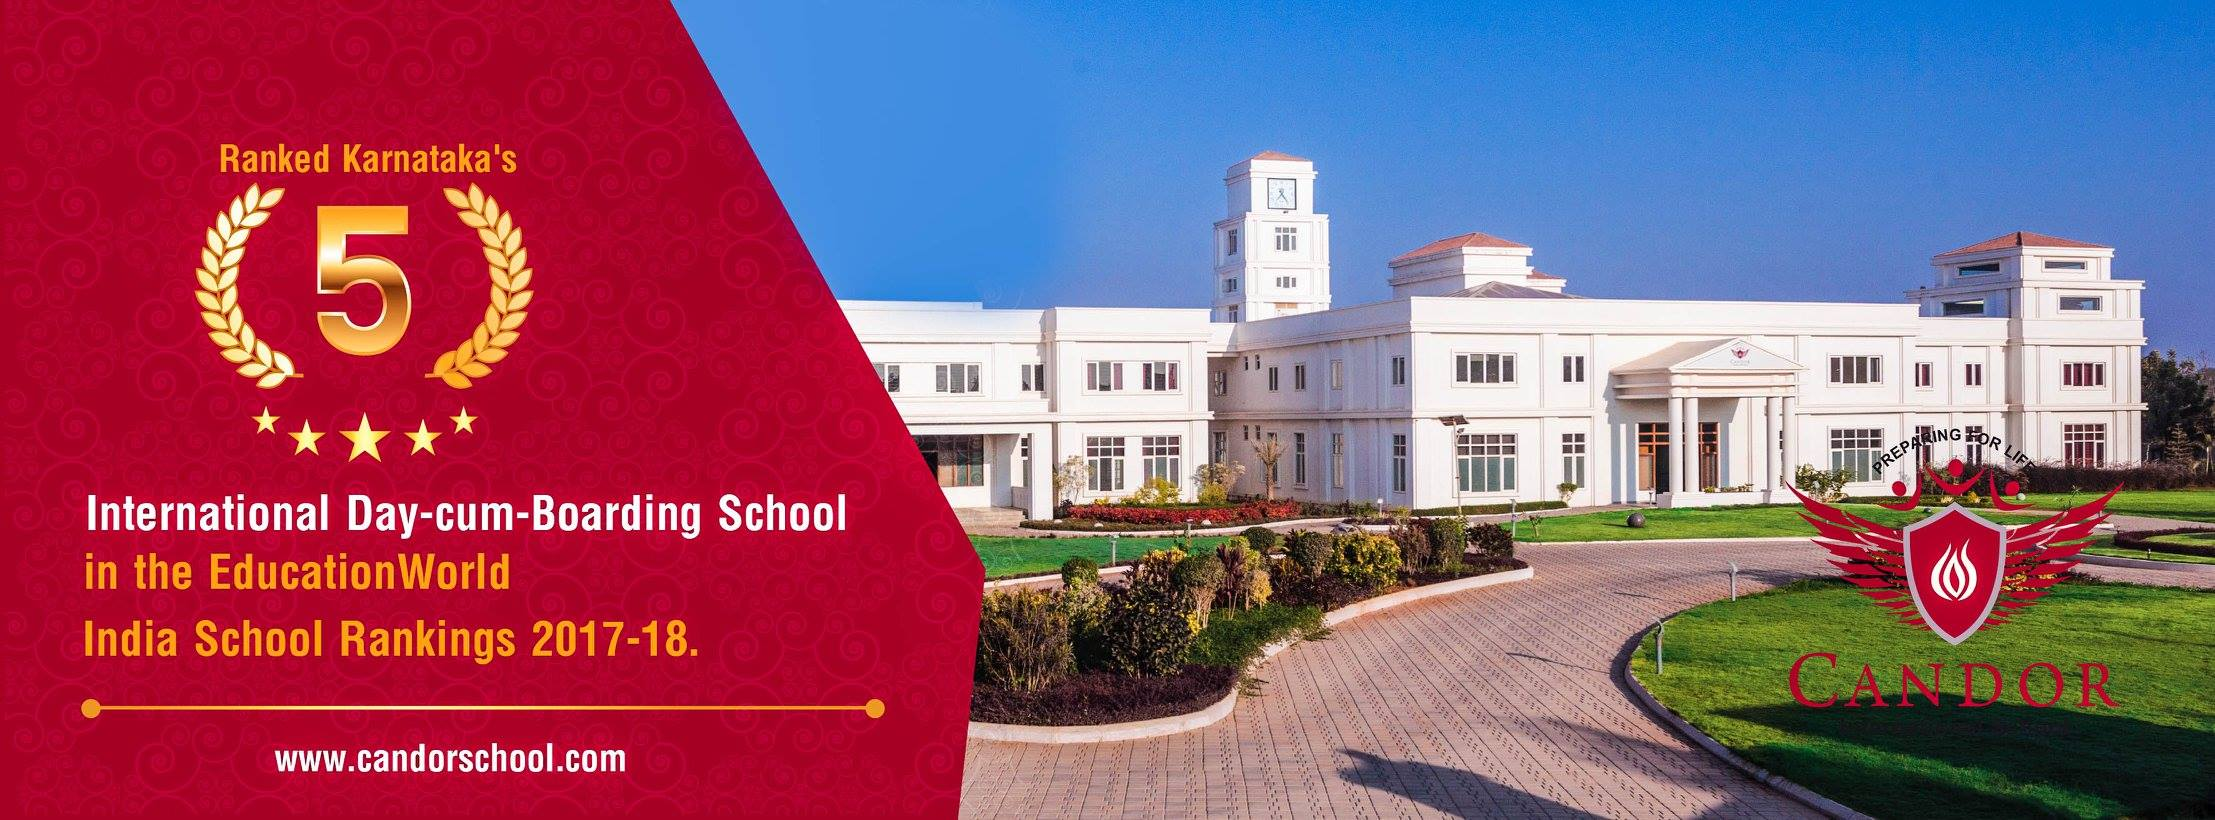 Candor International School is ranked Karnataka's No. 5 International Day-cum-Boarding School in the Education World India School Rankings 2017-18